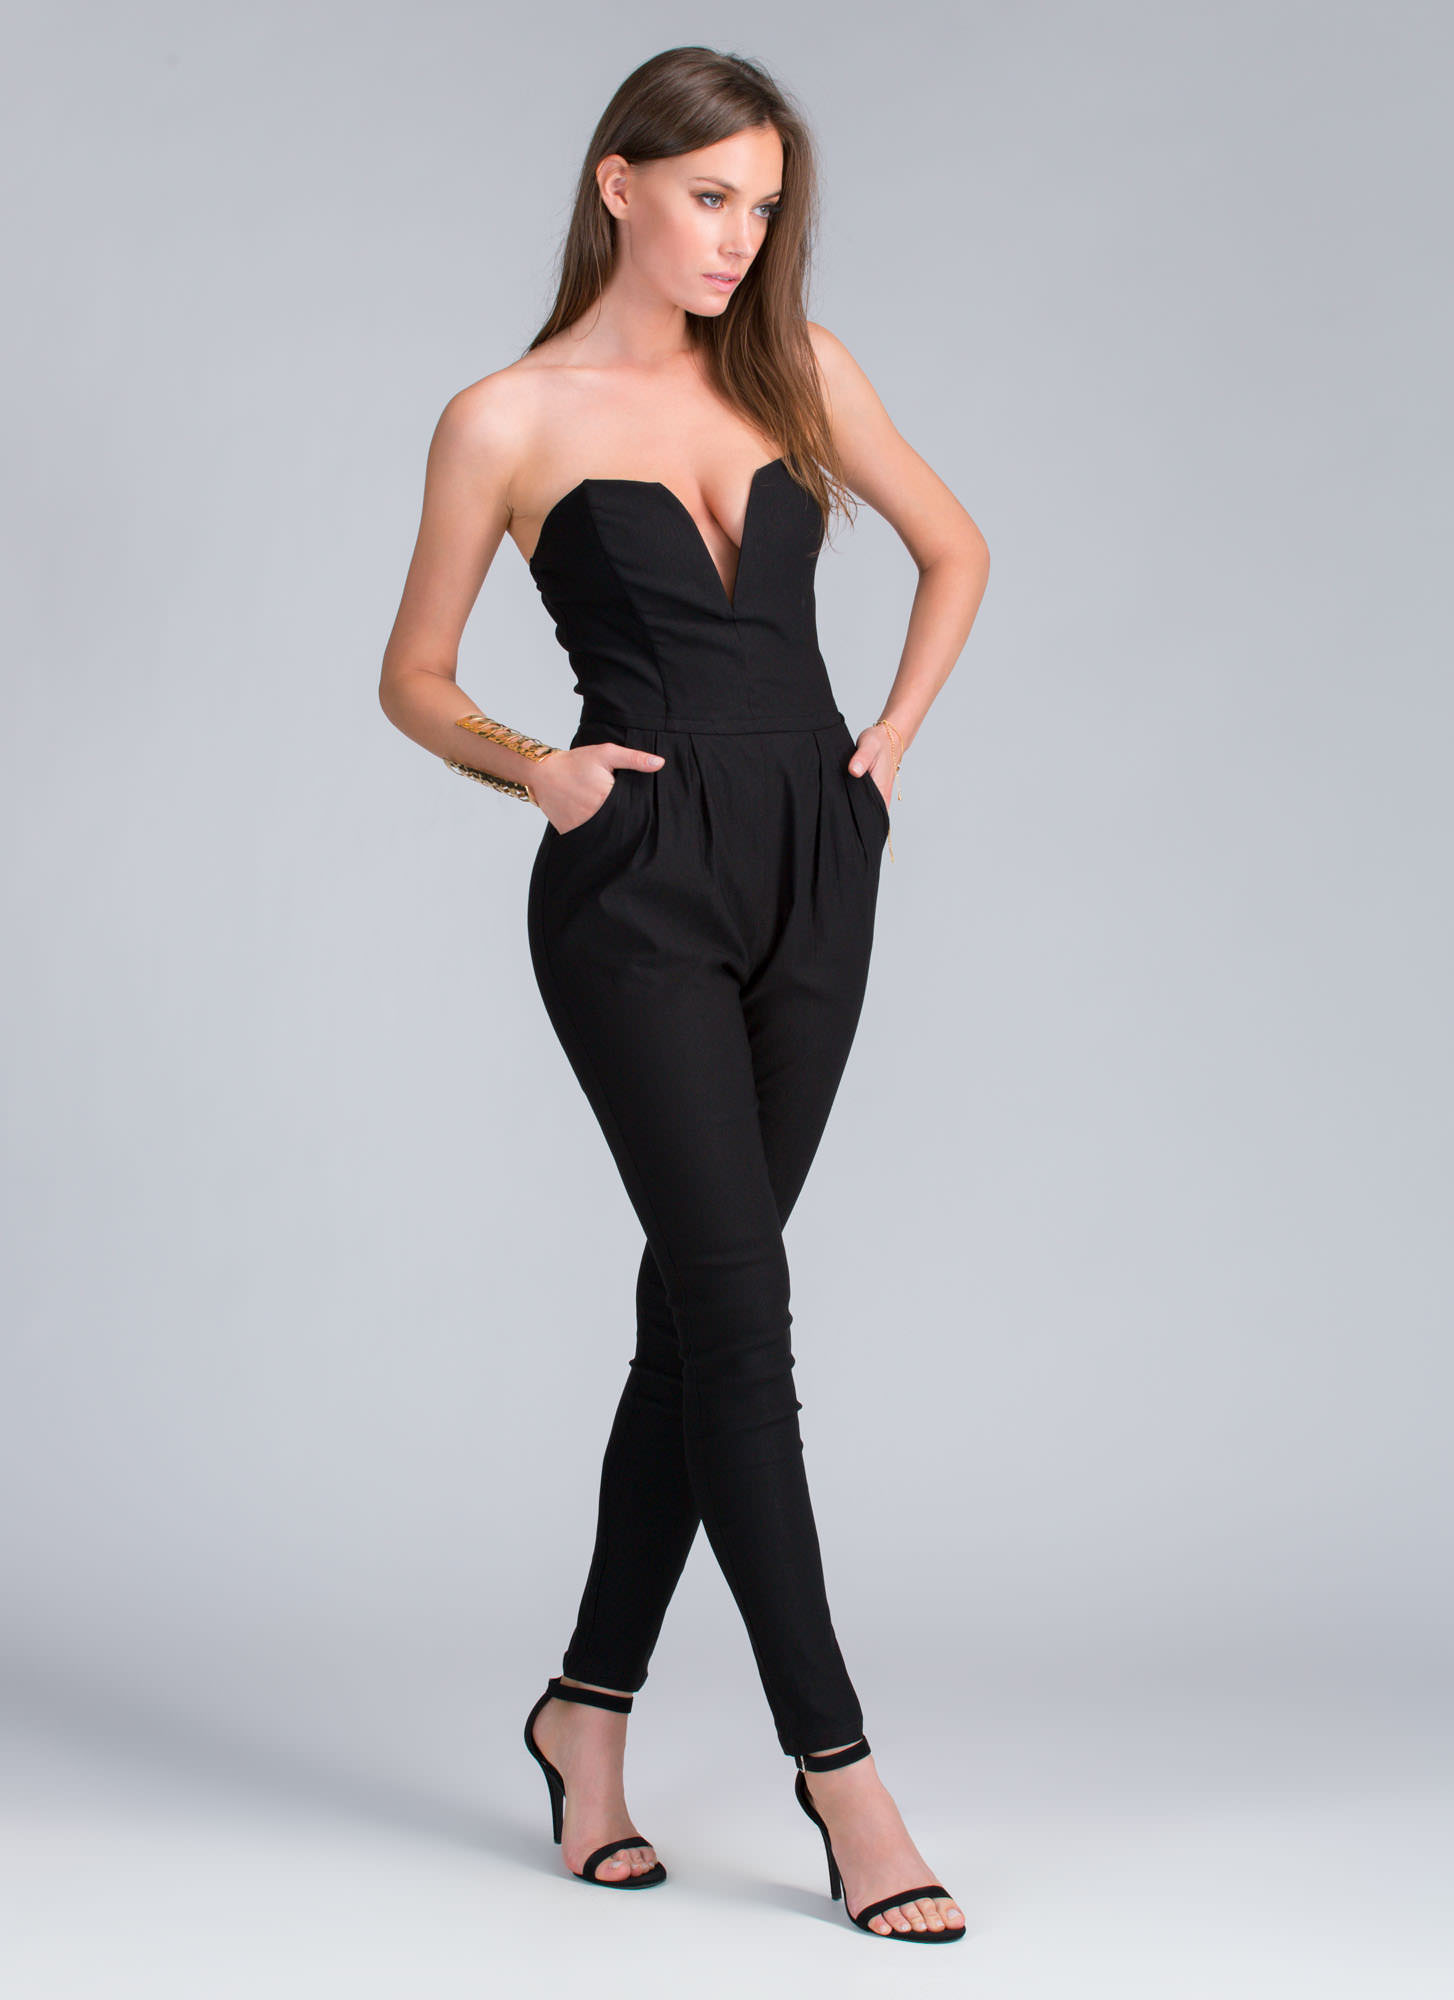 Take The Plunge Strapless Jumpsuit BLACK (Final Sale)